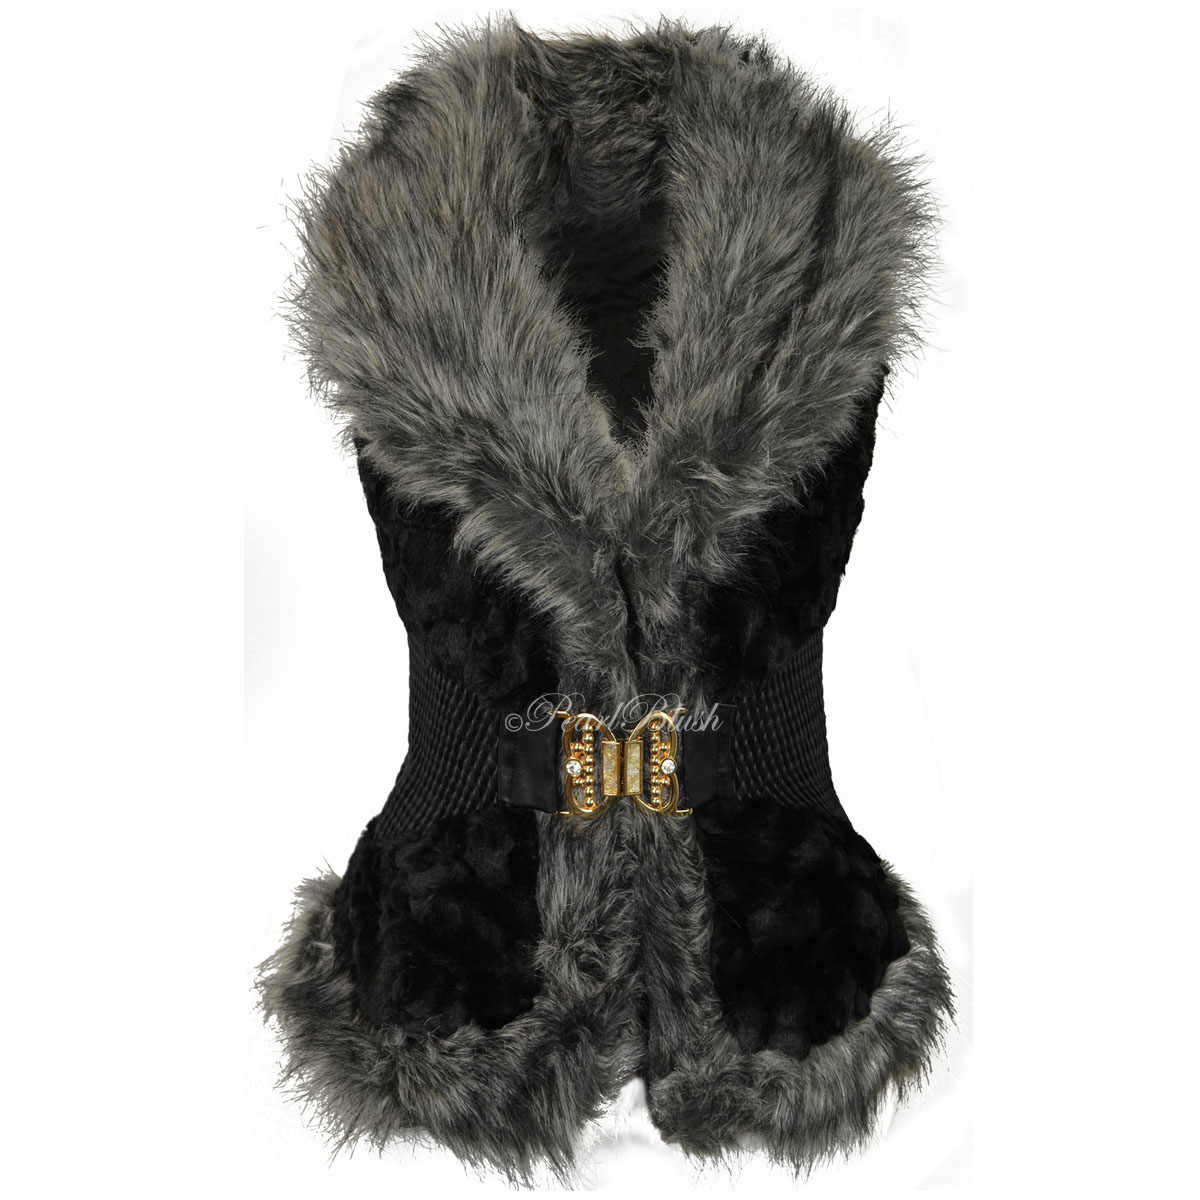 Shop women's faux fur coats and jackets. Browse the collection for petite and plus sizes in varied shades. Next day delivery & free returns available.